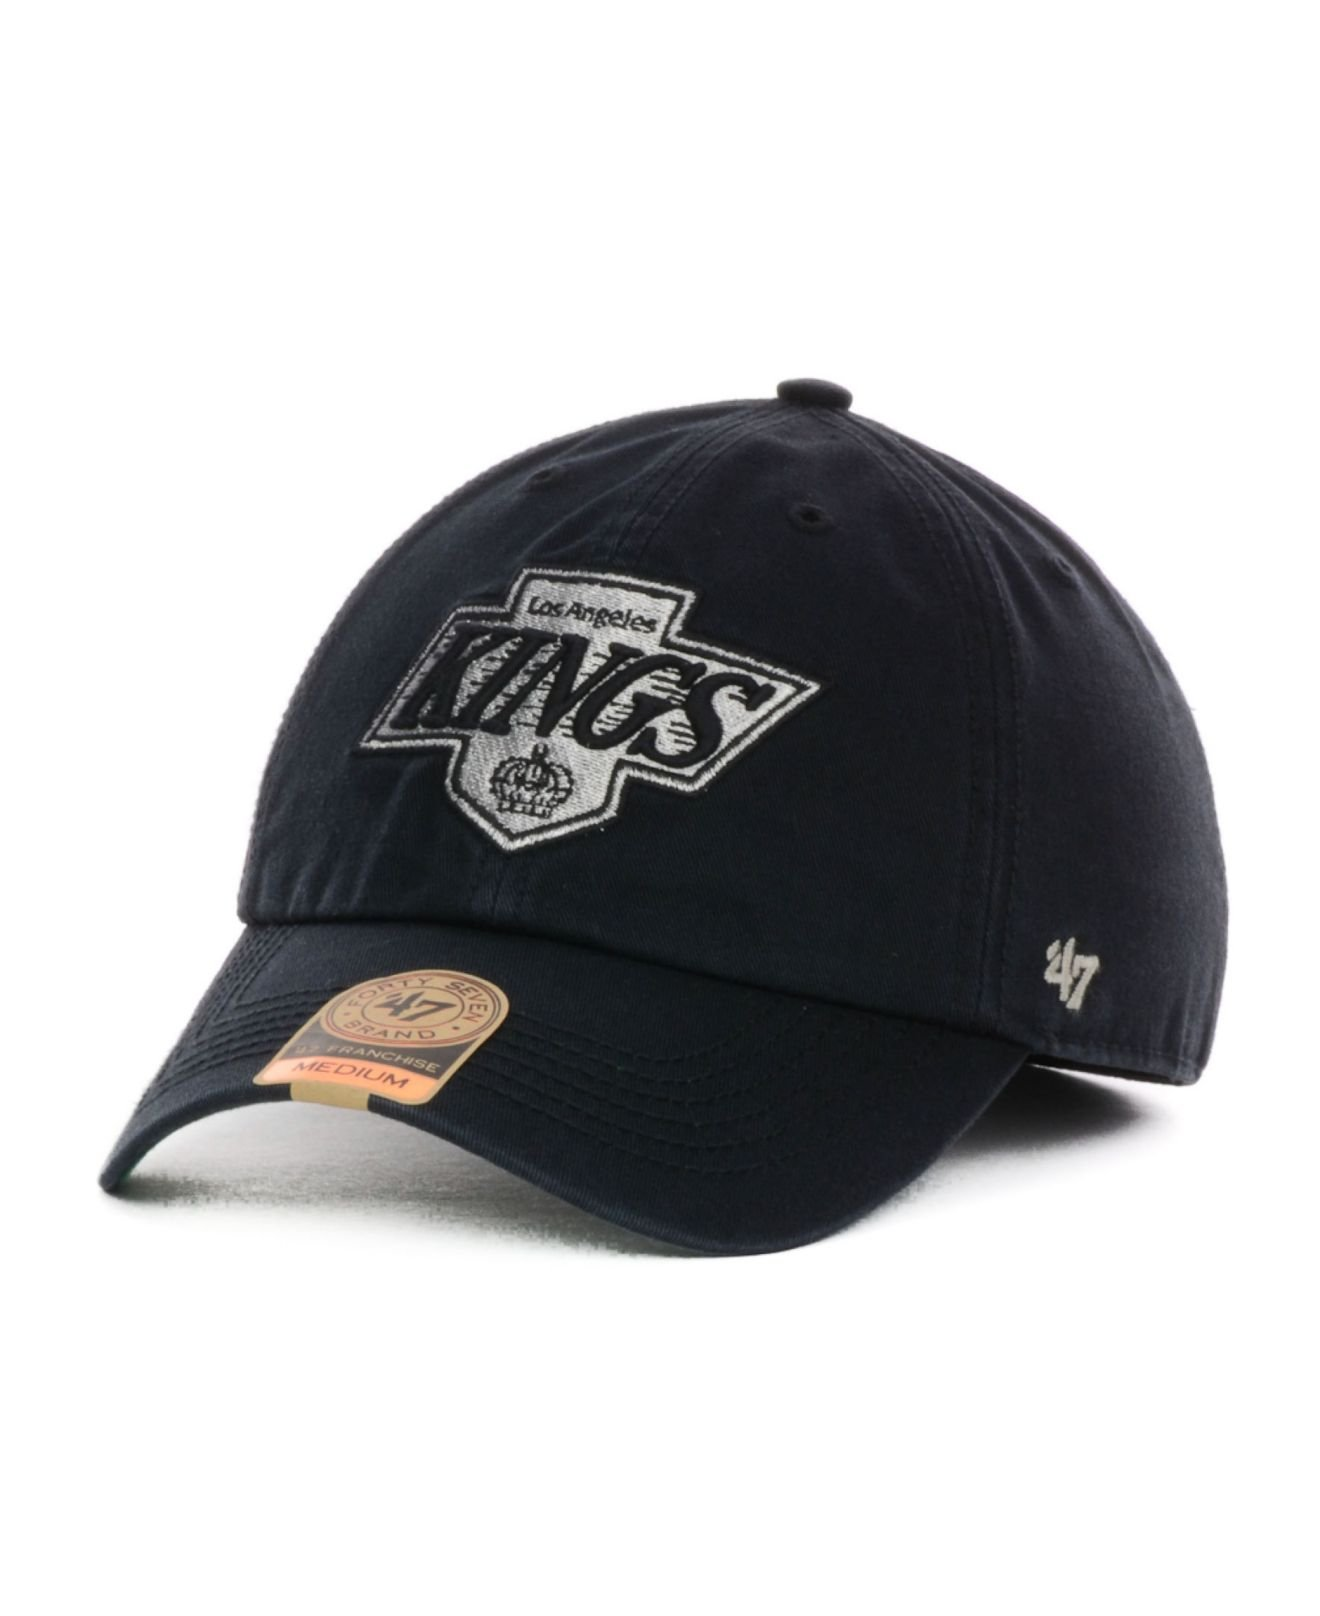 cheap for discount 65dc2 971a2 official store vintage los angeles kings hat f83bd 7ea27